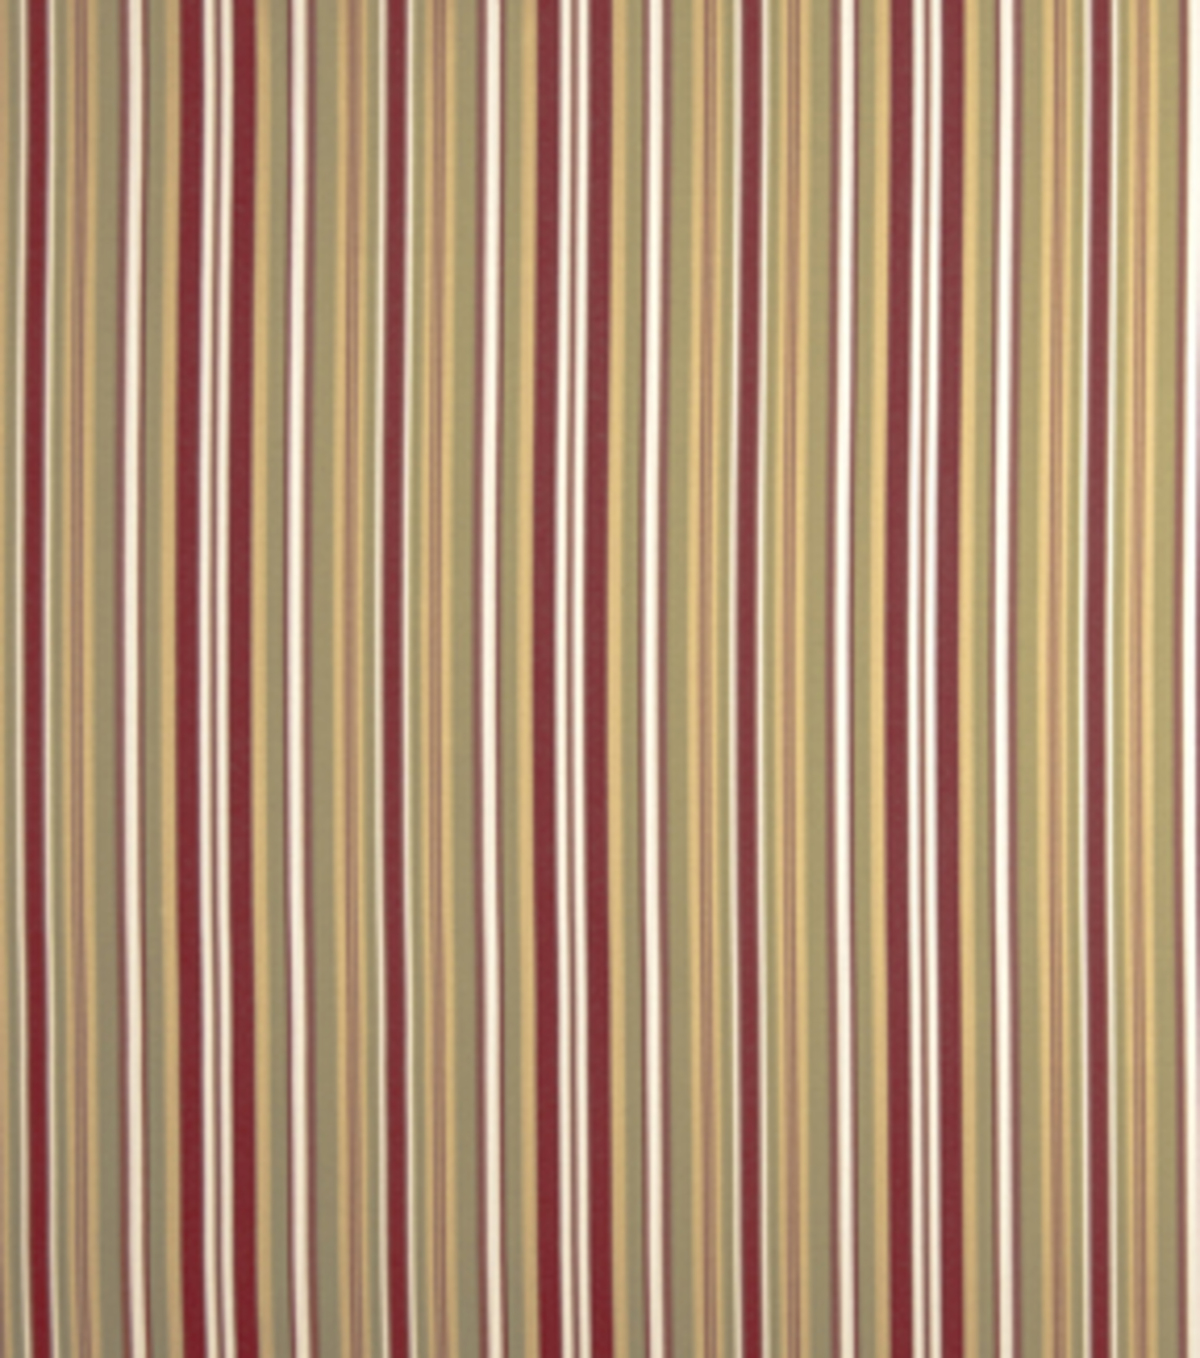 Home Decor 8\u0022x8\u0022 Fabric Swatch-Upholstery Fabric Eaton Square Abstract Multi